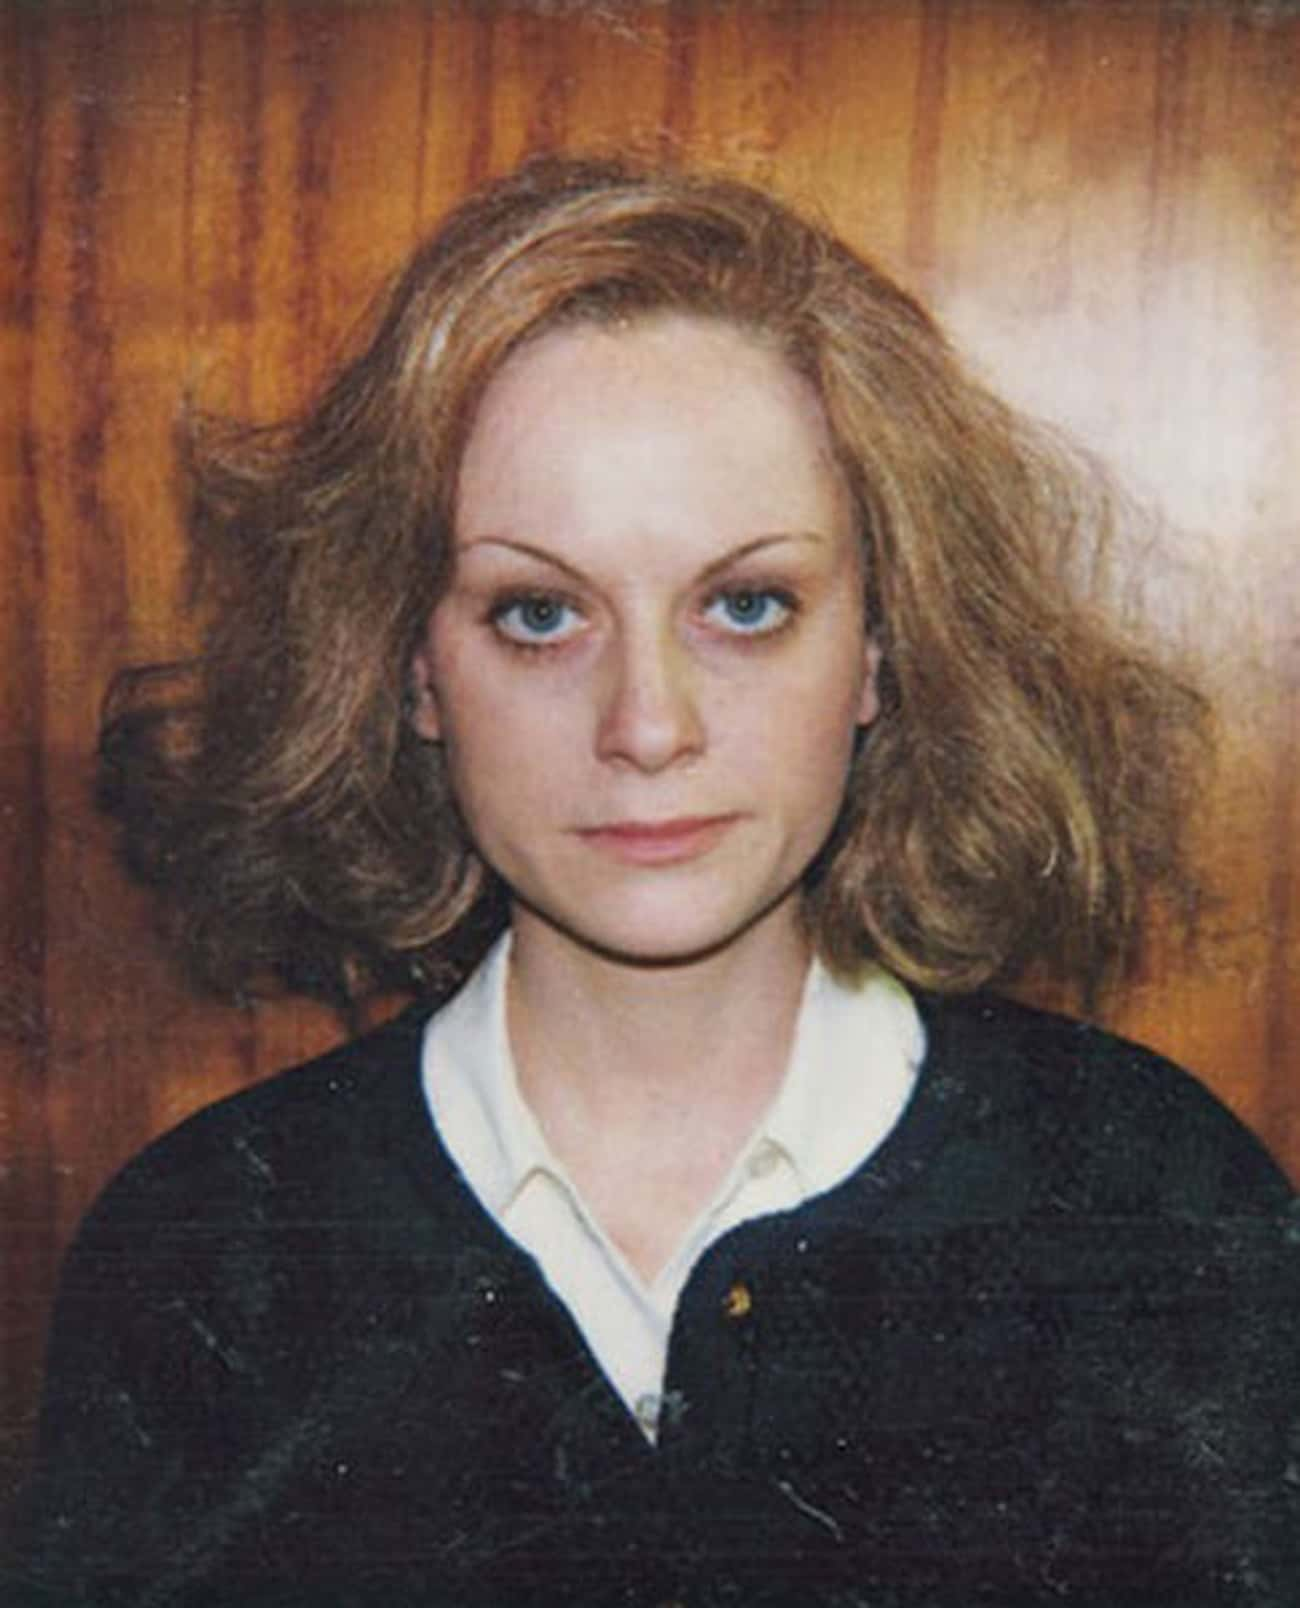 Young Amy Poehler in Black Pol is listed (or ranked) 4 on the list 11 Pictures of Young Amy Poehler